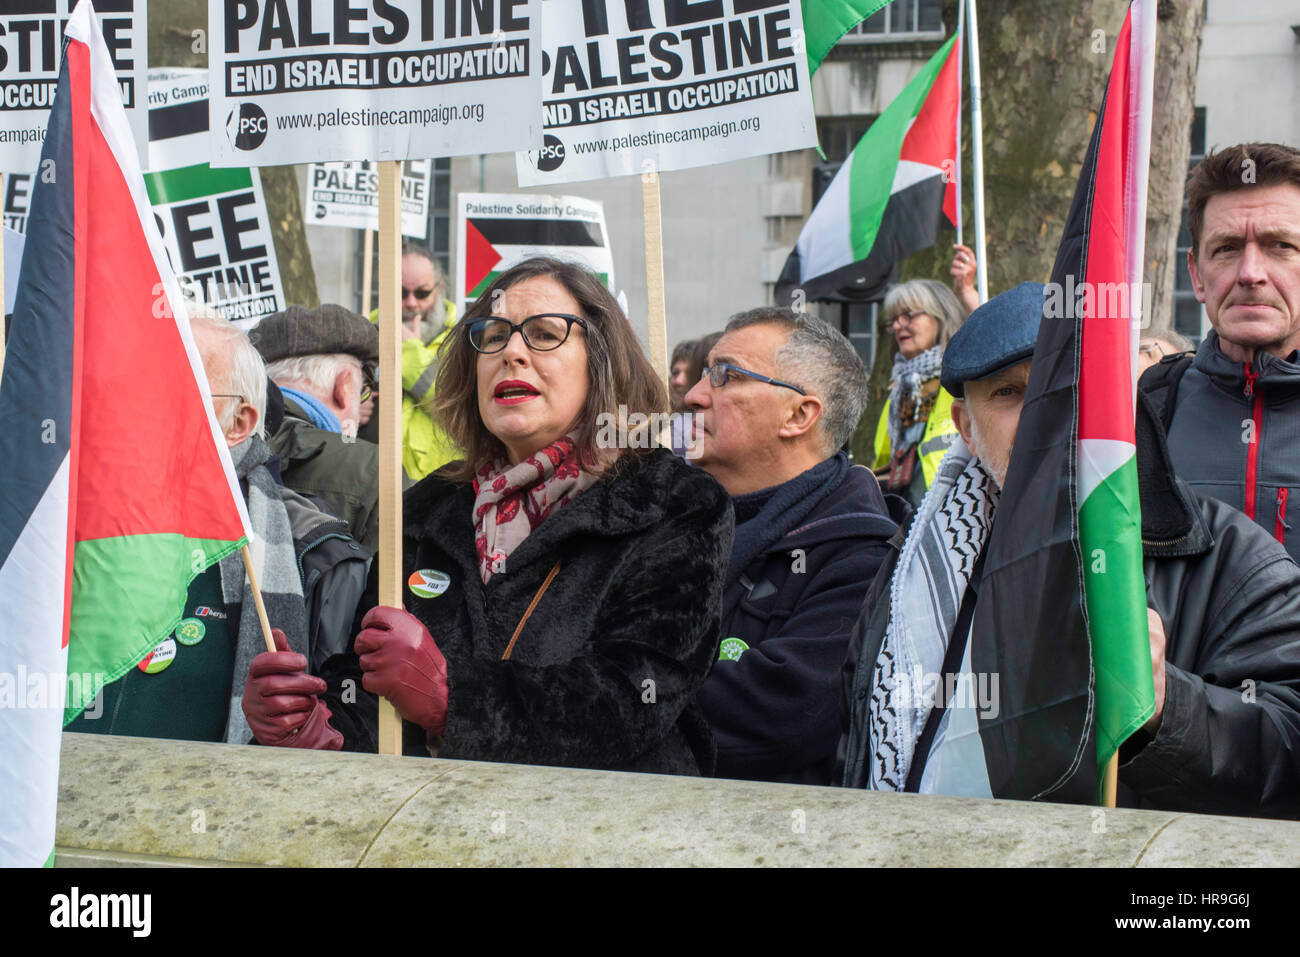 Demonstrators campaigning for Palestine in the street opposite Downing Street, London. - Stock Image